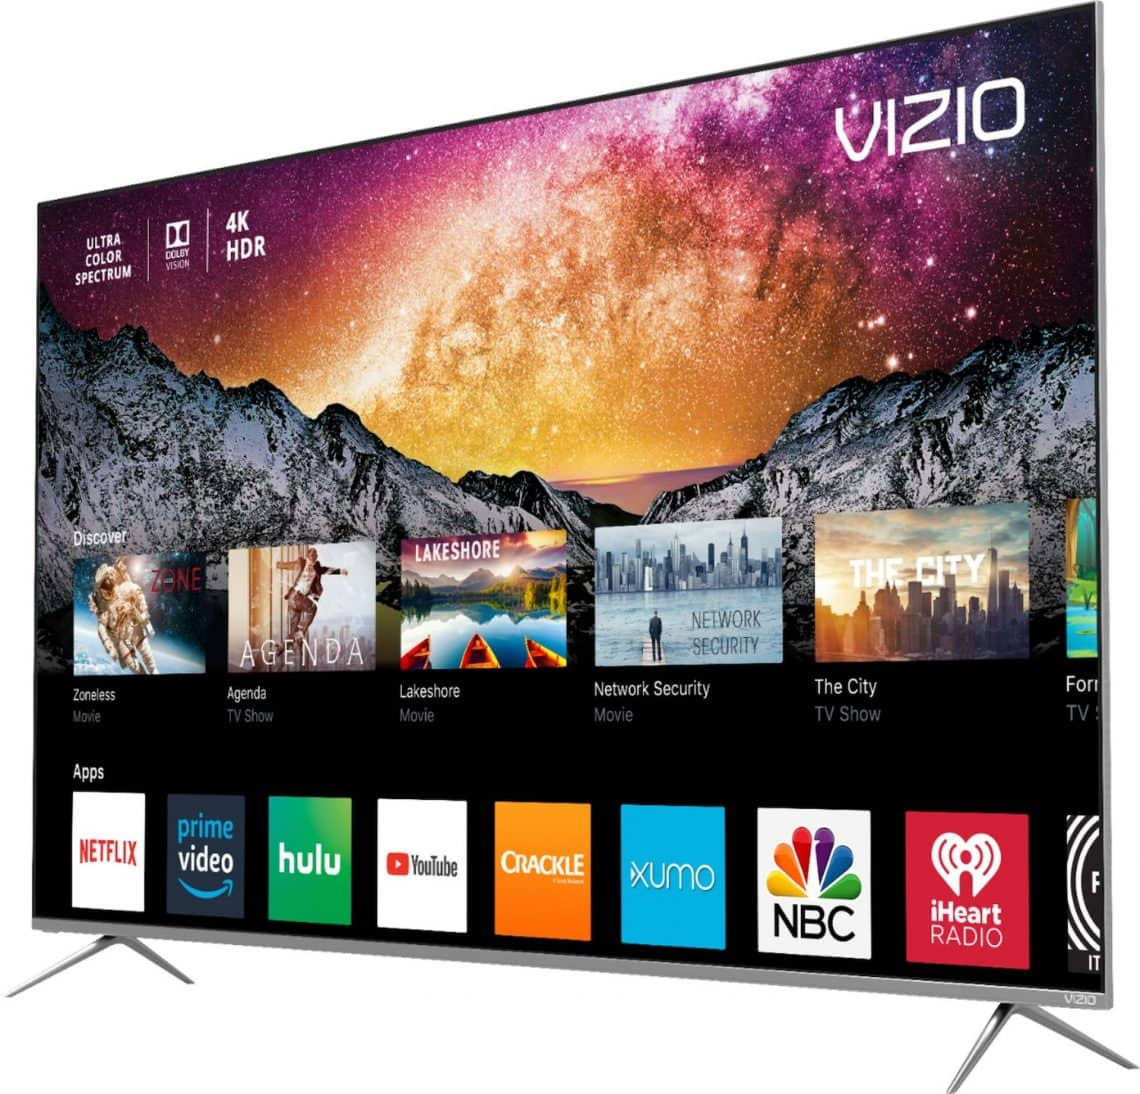 6213228 led 1 1140x1094 - 18 of the Best 4K Ultra HD Movies to Own in 2018